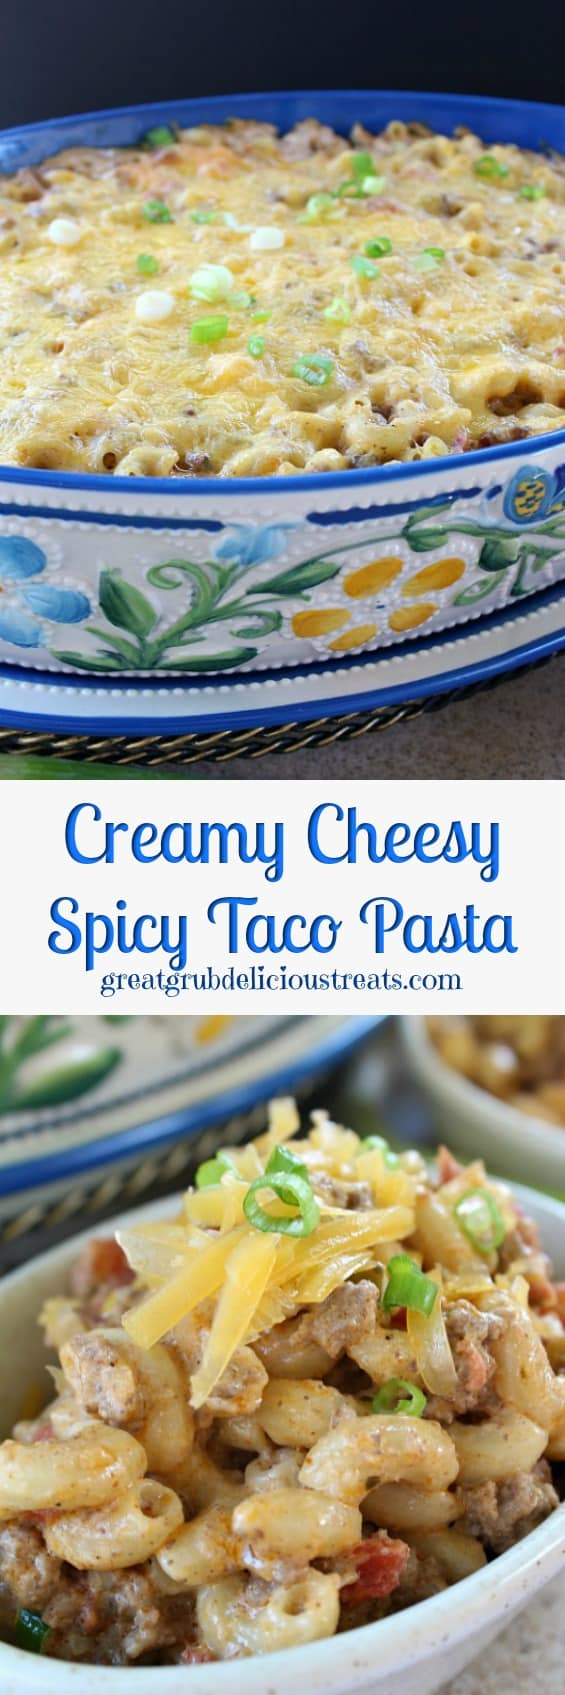 Creamy Cheesy Spicy Taco Pasta